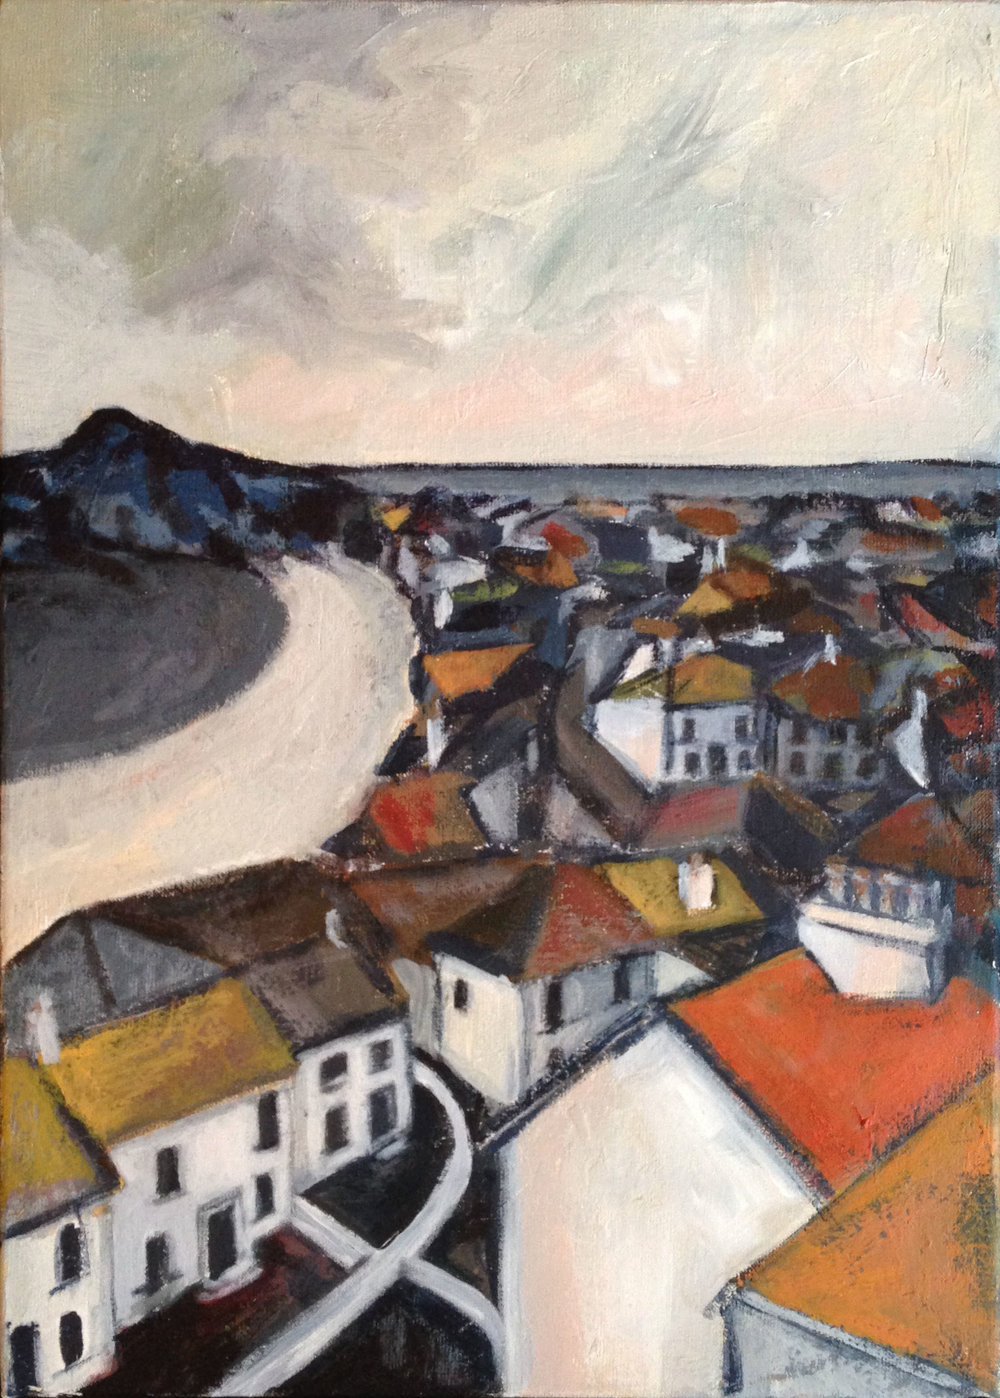 St Ives Roofs - acrylic on canvas  25x35cm £200